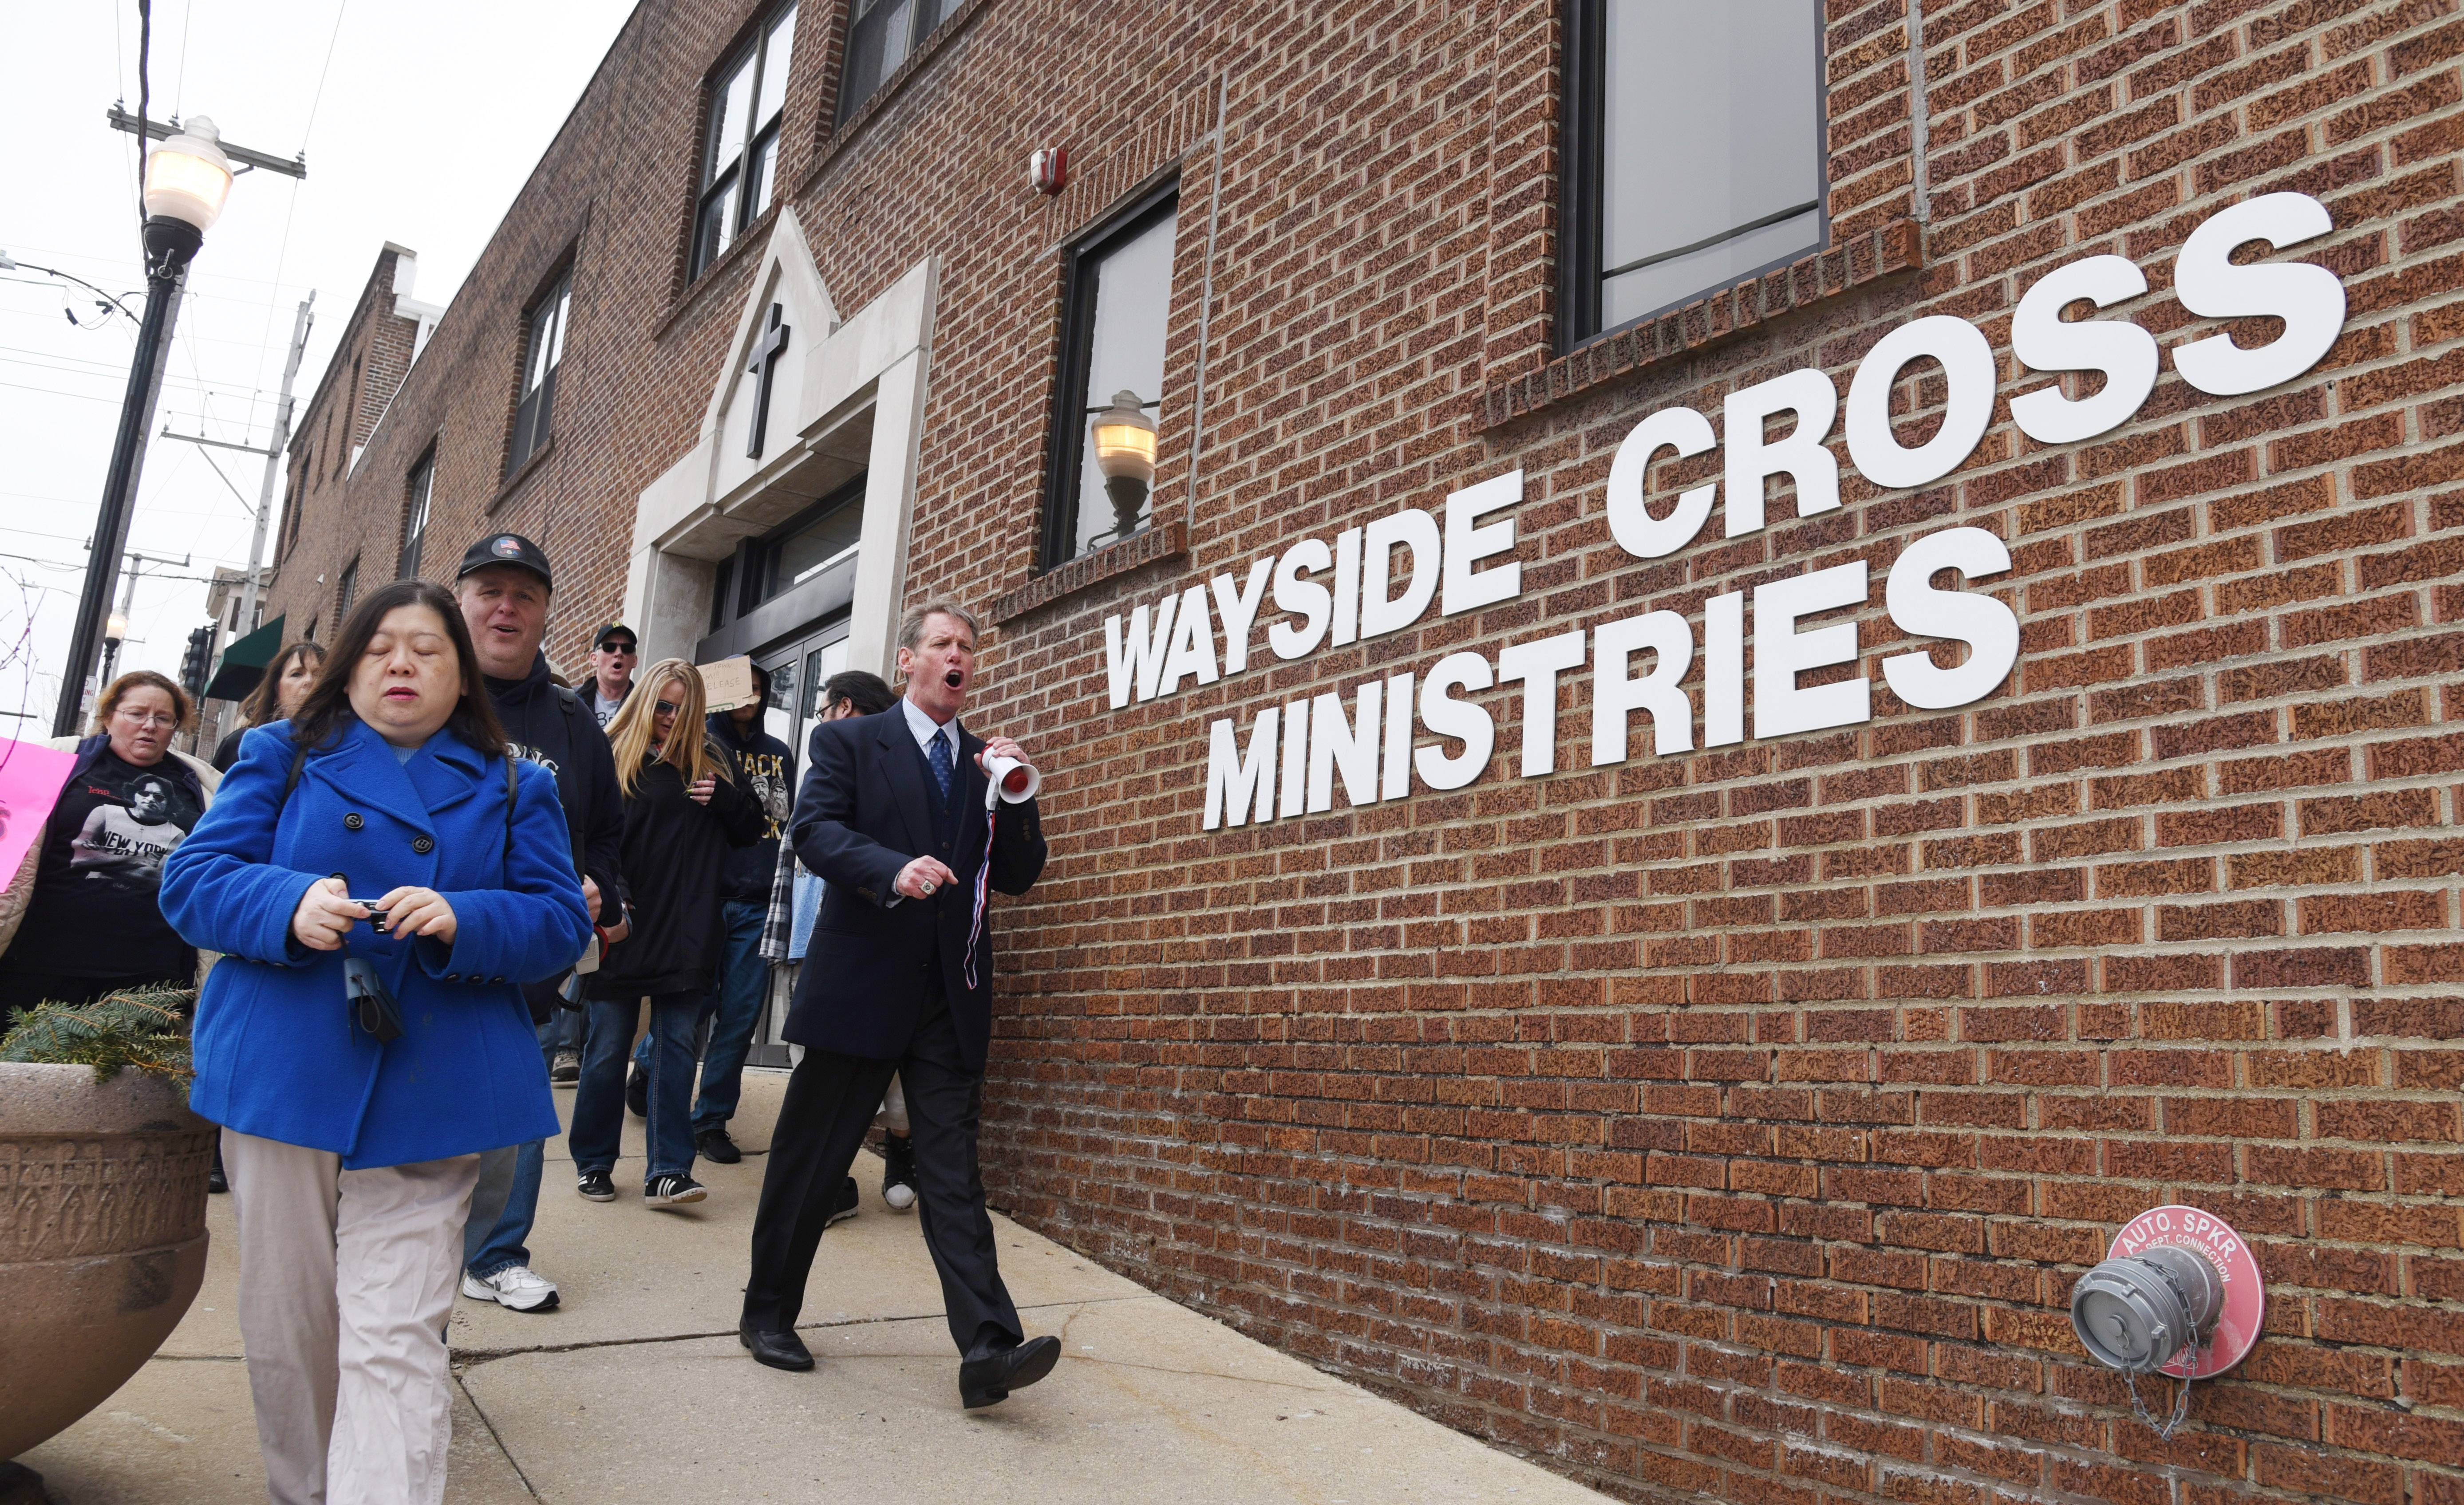 Wayside Cross Ministries in Aurora: We'll continue housing 'Ripper Crew' killer